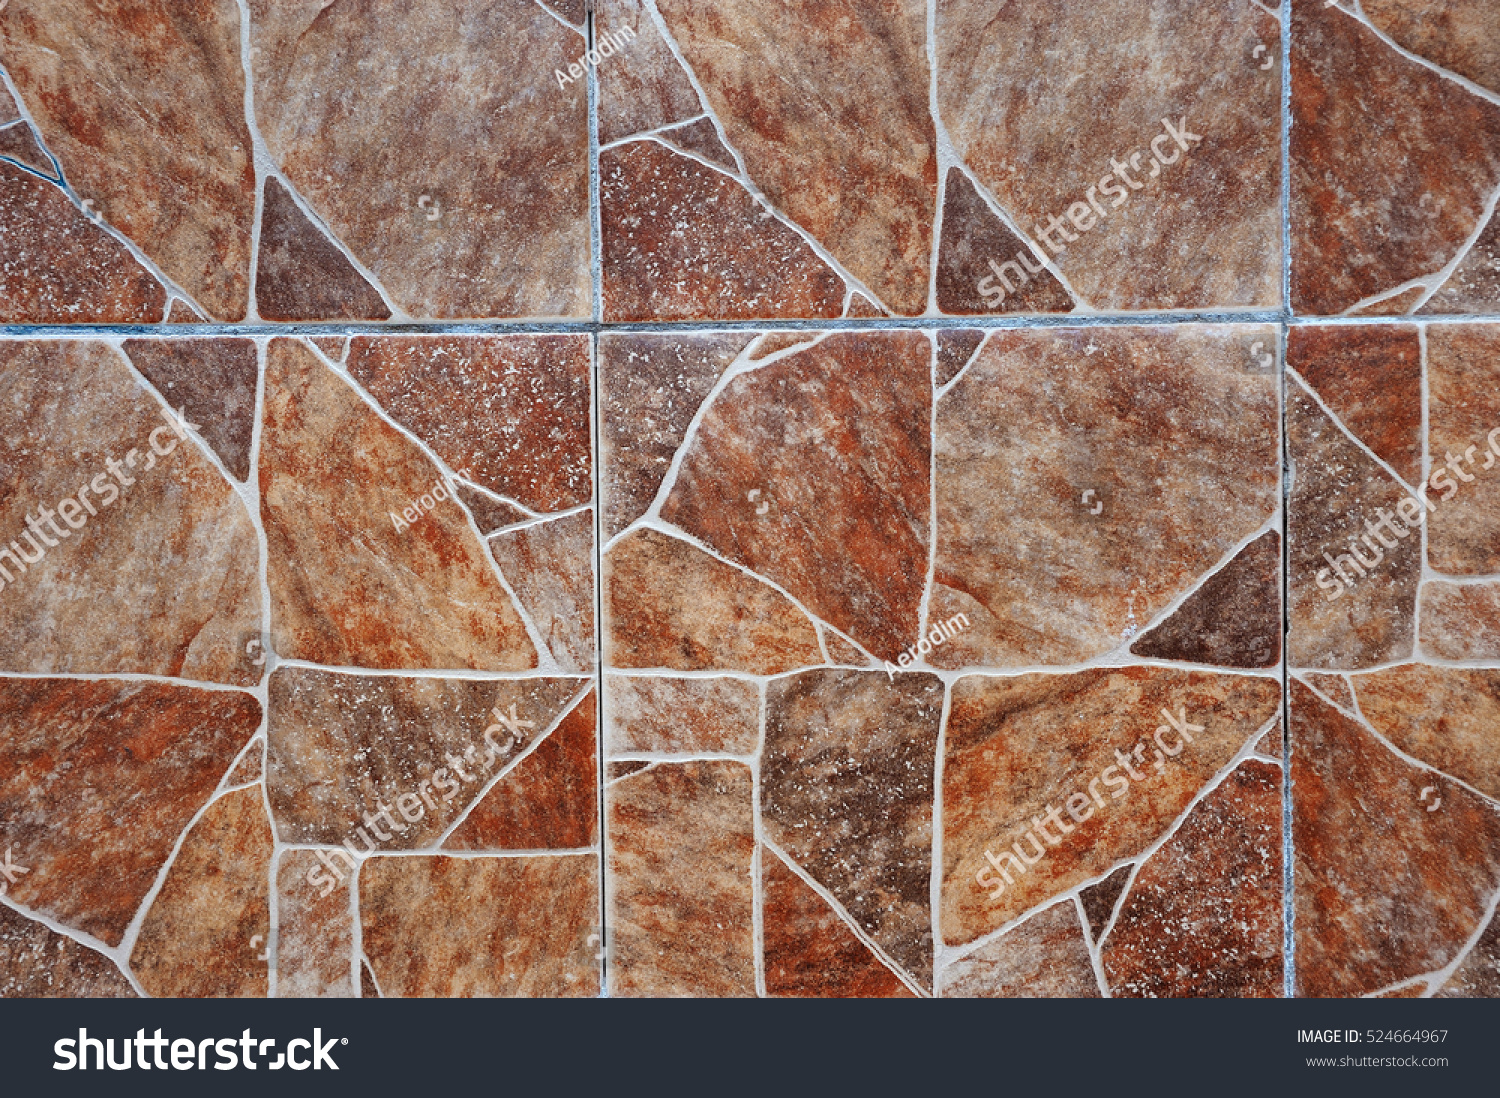 Ceramic granite tiles pattern relief structure stock photo ceramic granite tiles pattern with a relief structure background texture dailygadgetfo Images